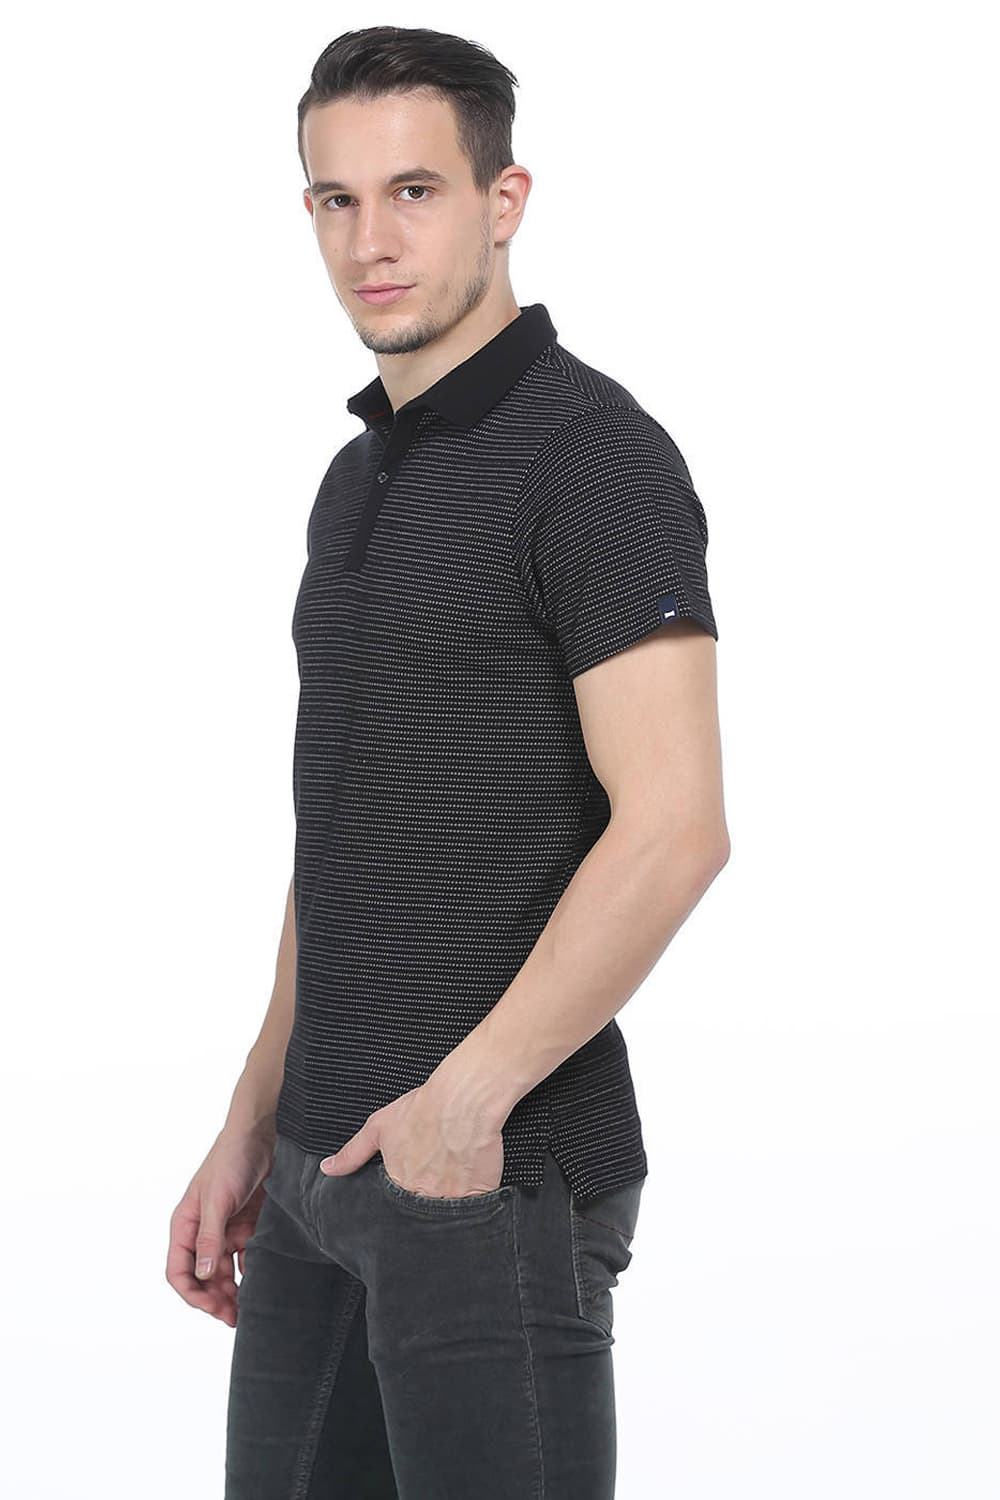 710f5a81 Basics Muscle Fit Jet Black Polo T Shirt-16bts35011